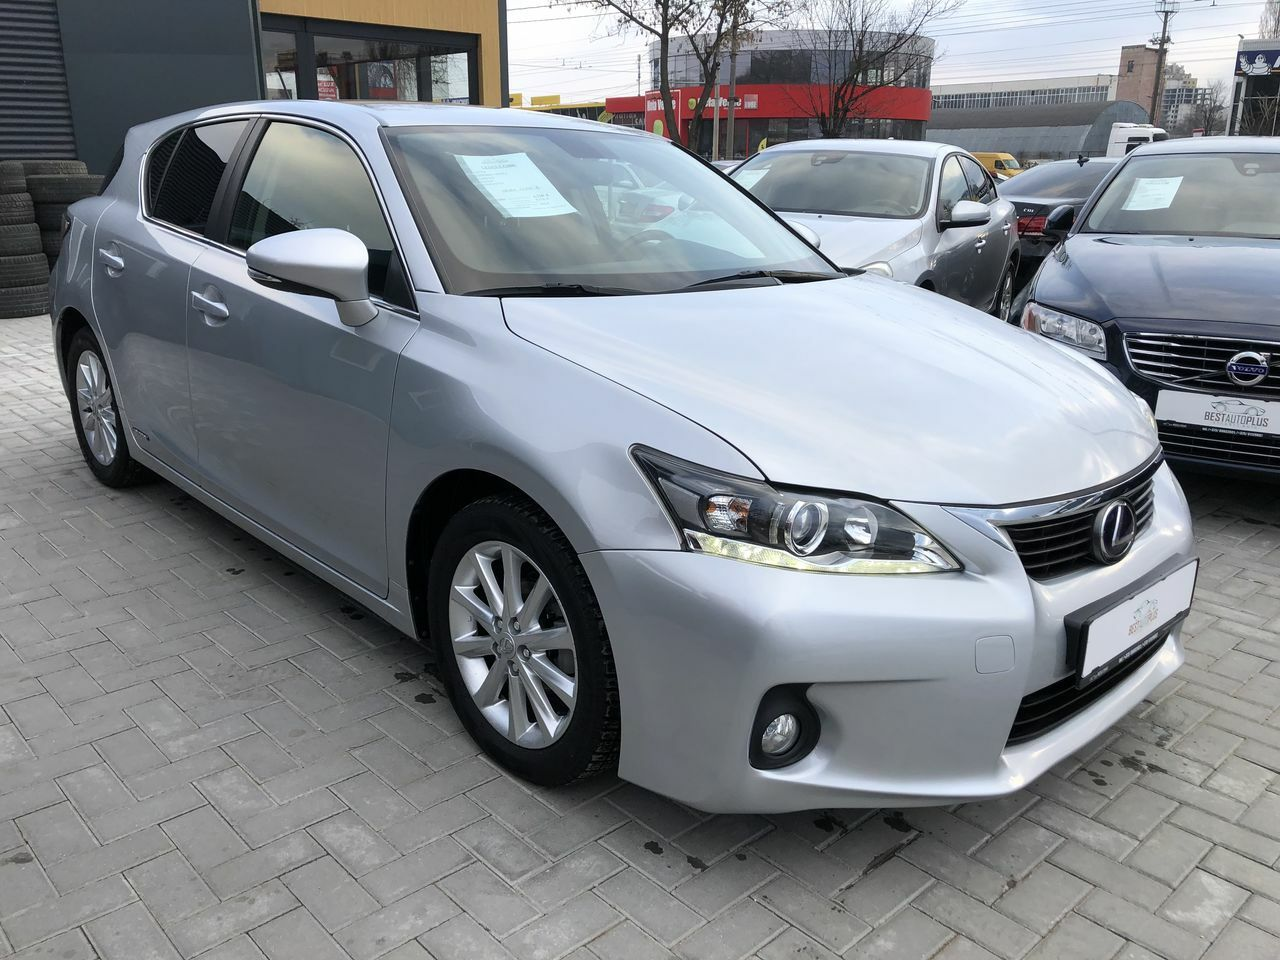 "<span style=""font-weight: bold;"">Lexus ct Series</span>"